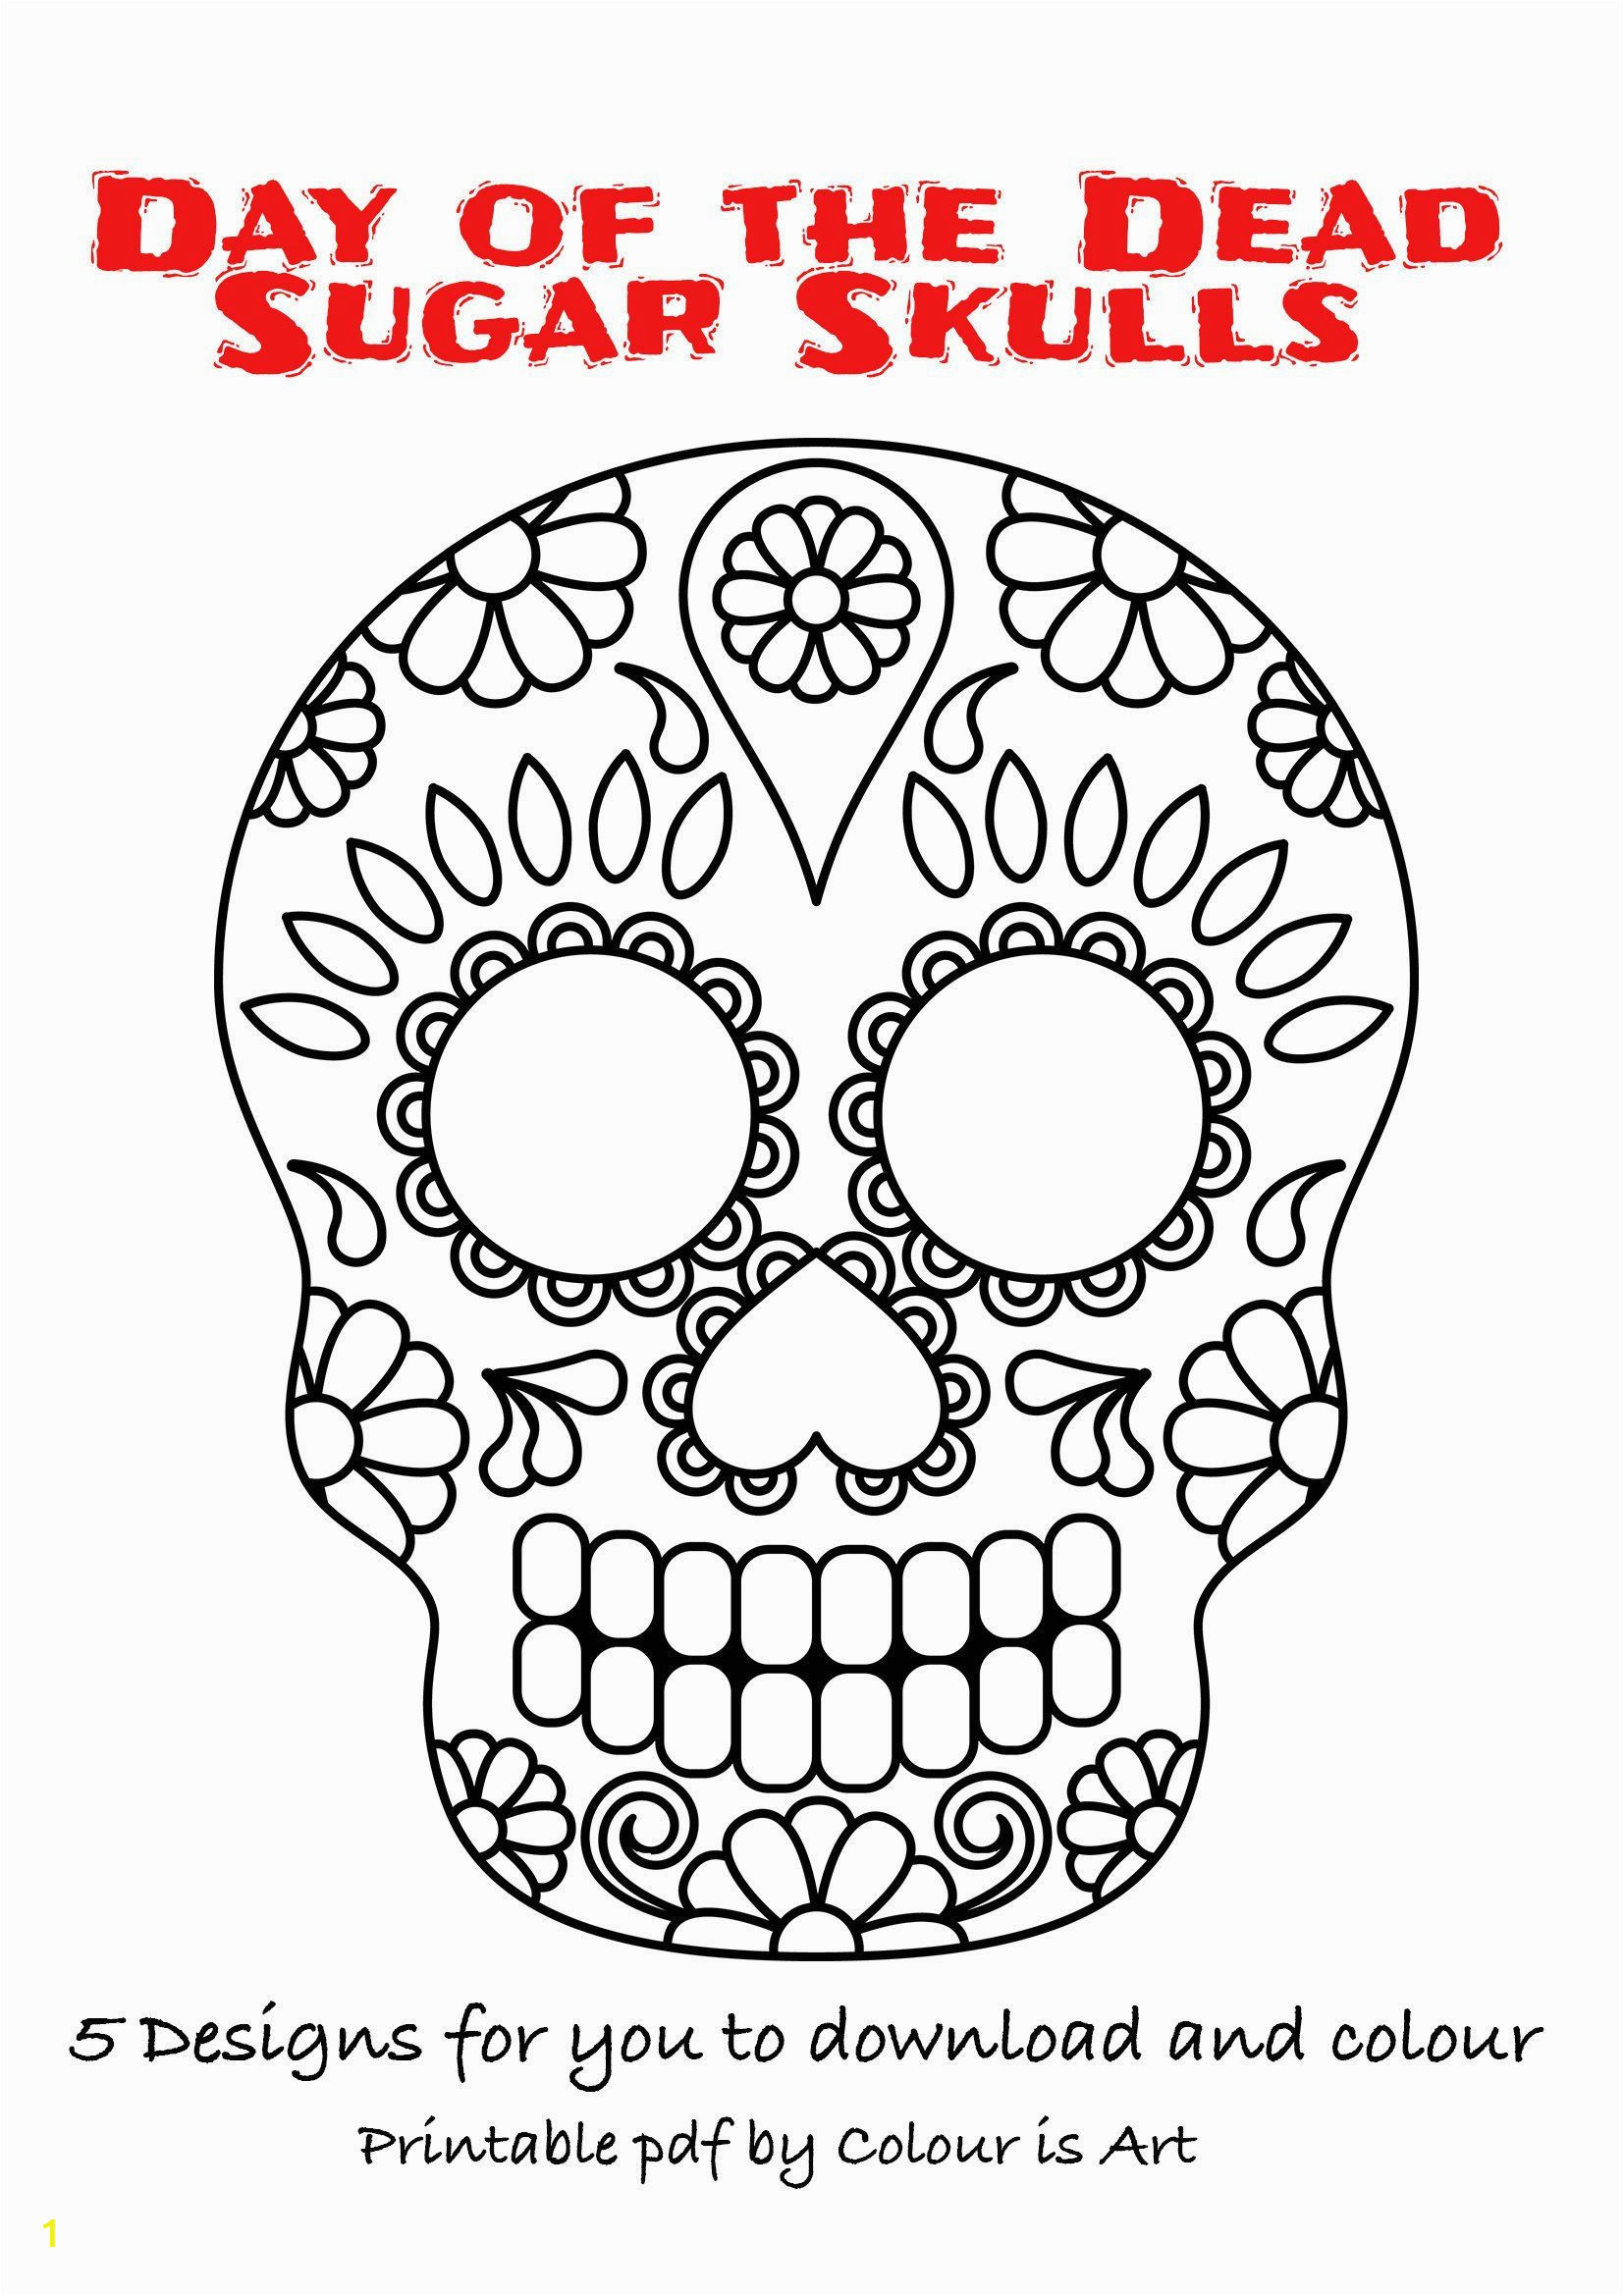 Halloween Color Pages Pdf Day Of the Dead Sugar Skulls 5 Designs to and